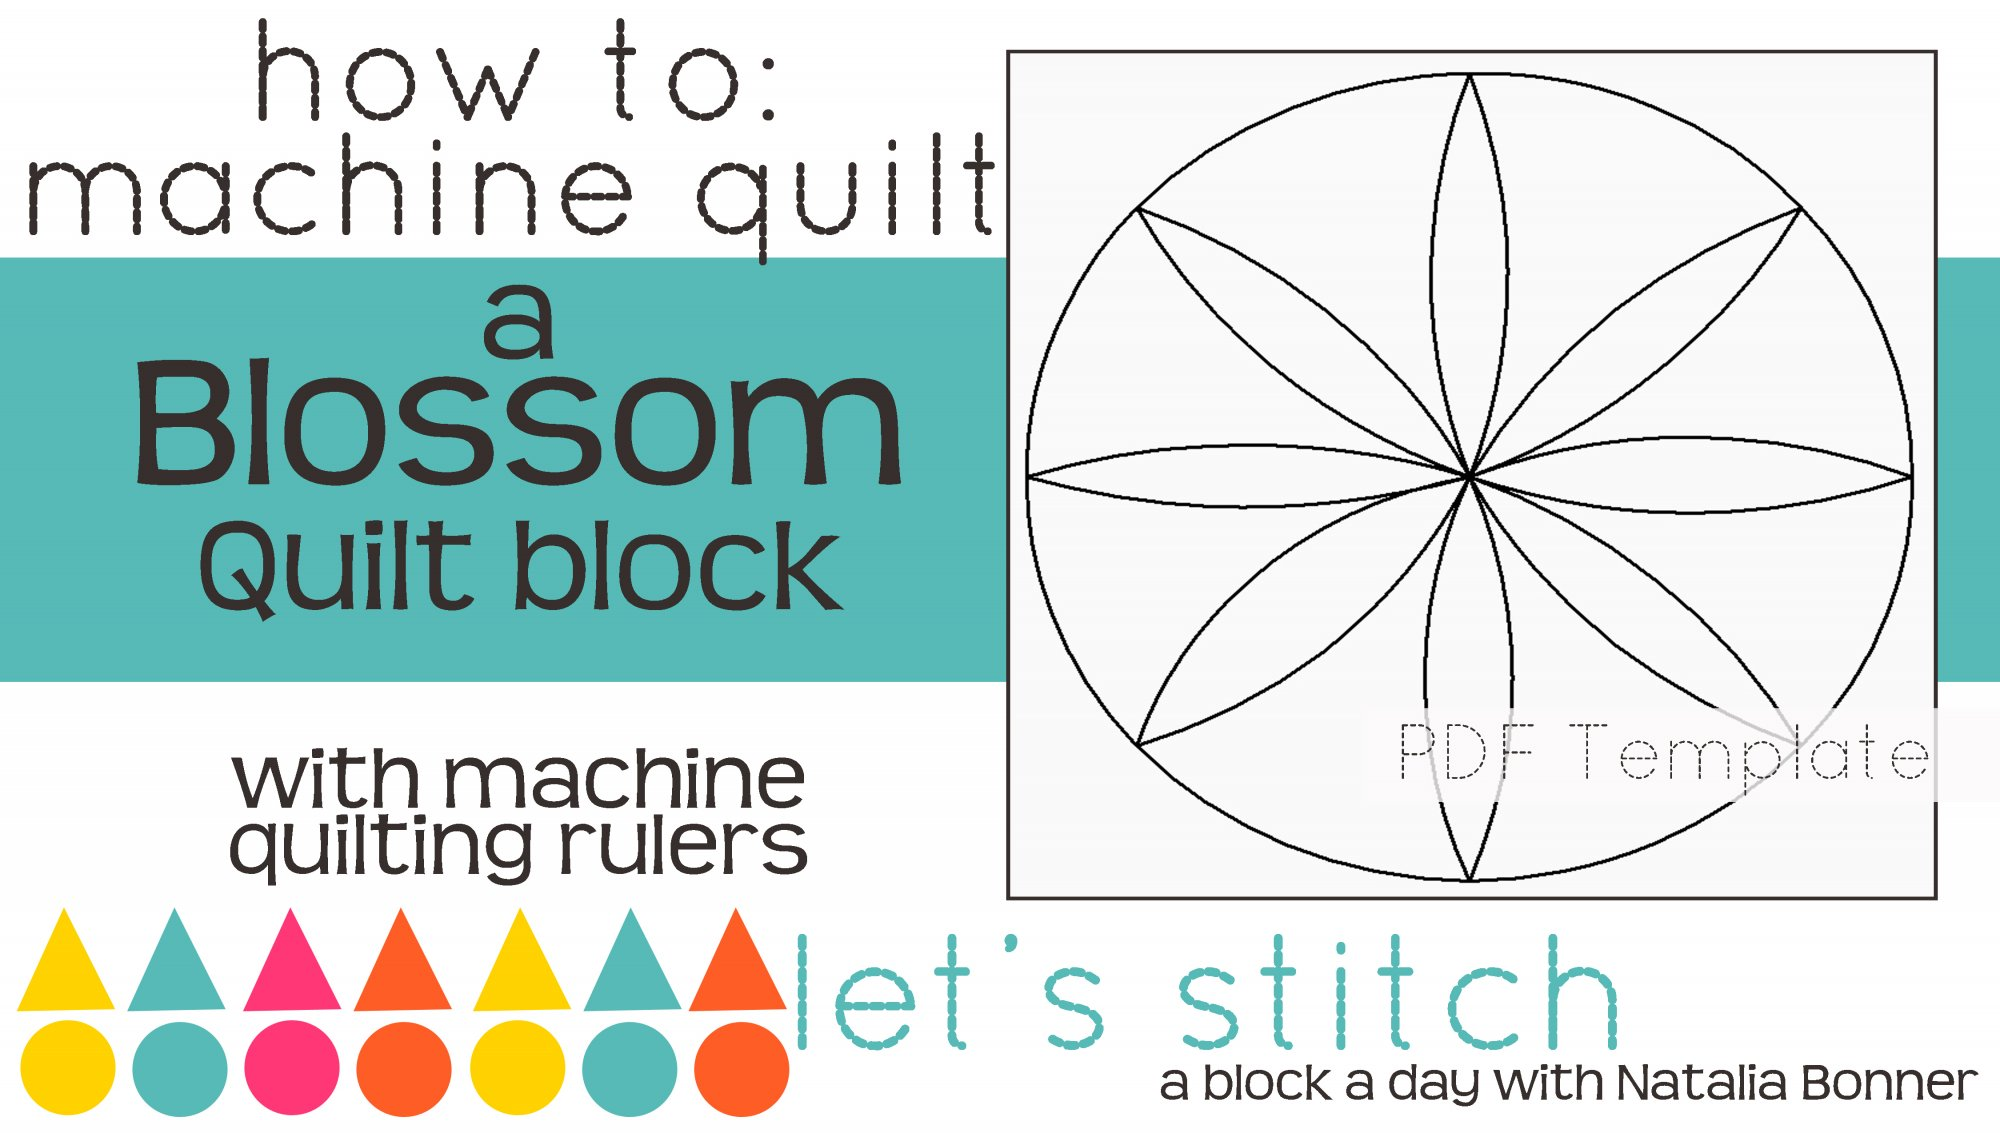 Let's Stitch - A Block a Day With Natalia Bonner - PDF - Blossom